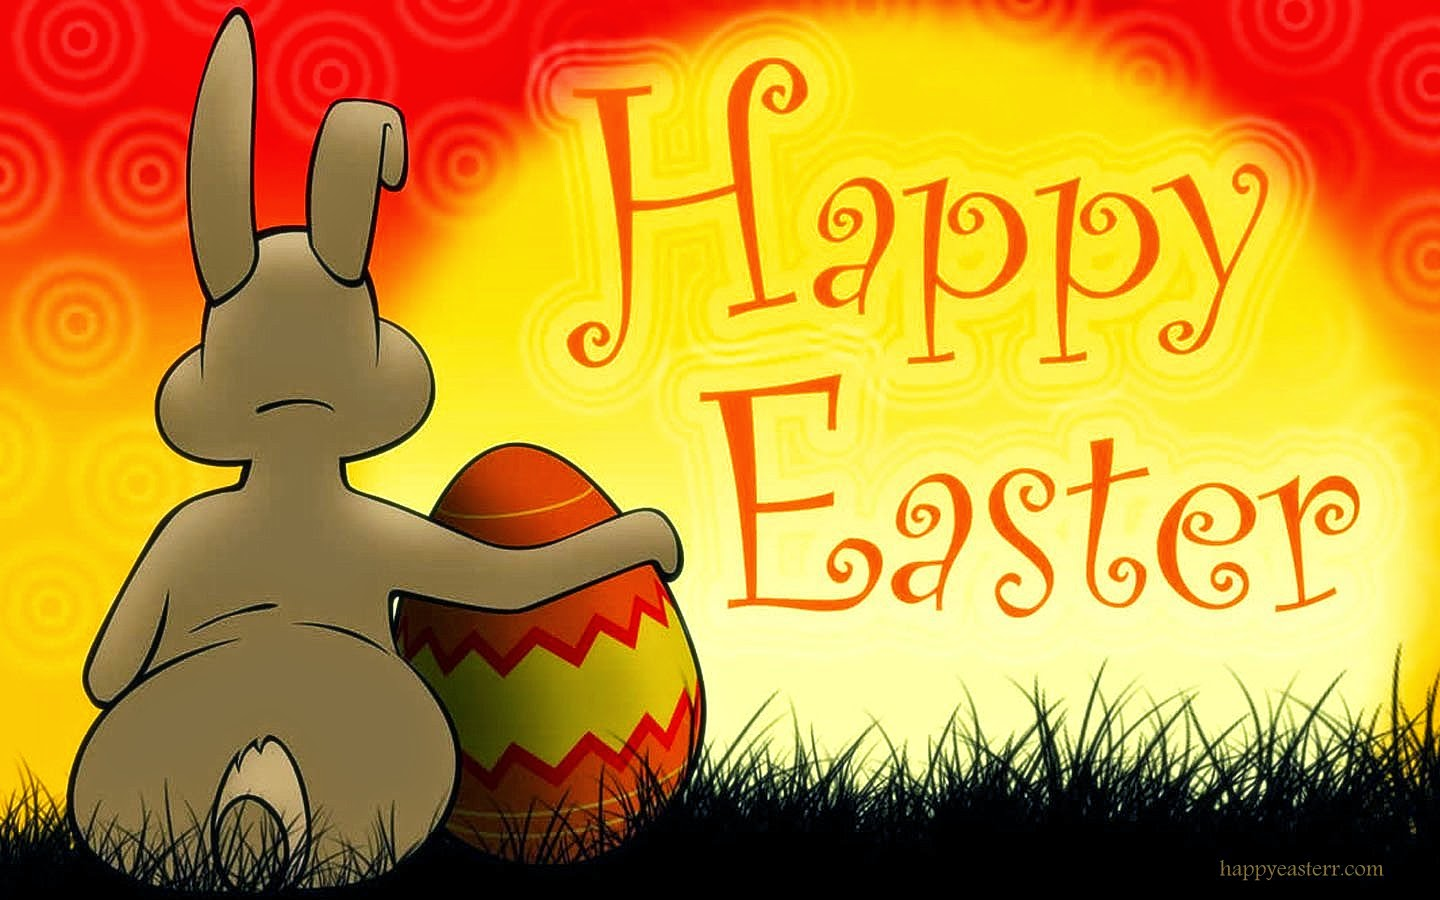 happy-easter-wishes-hd-images